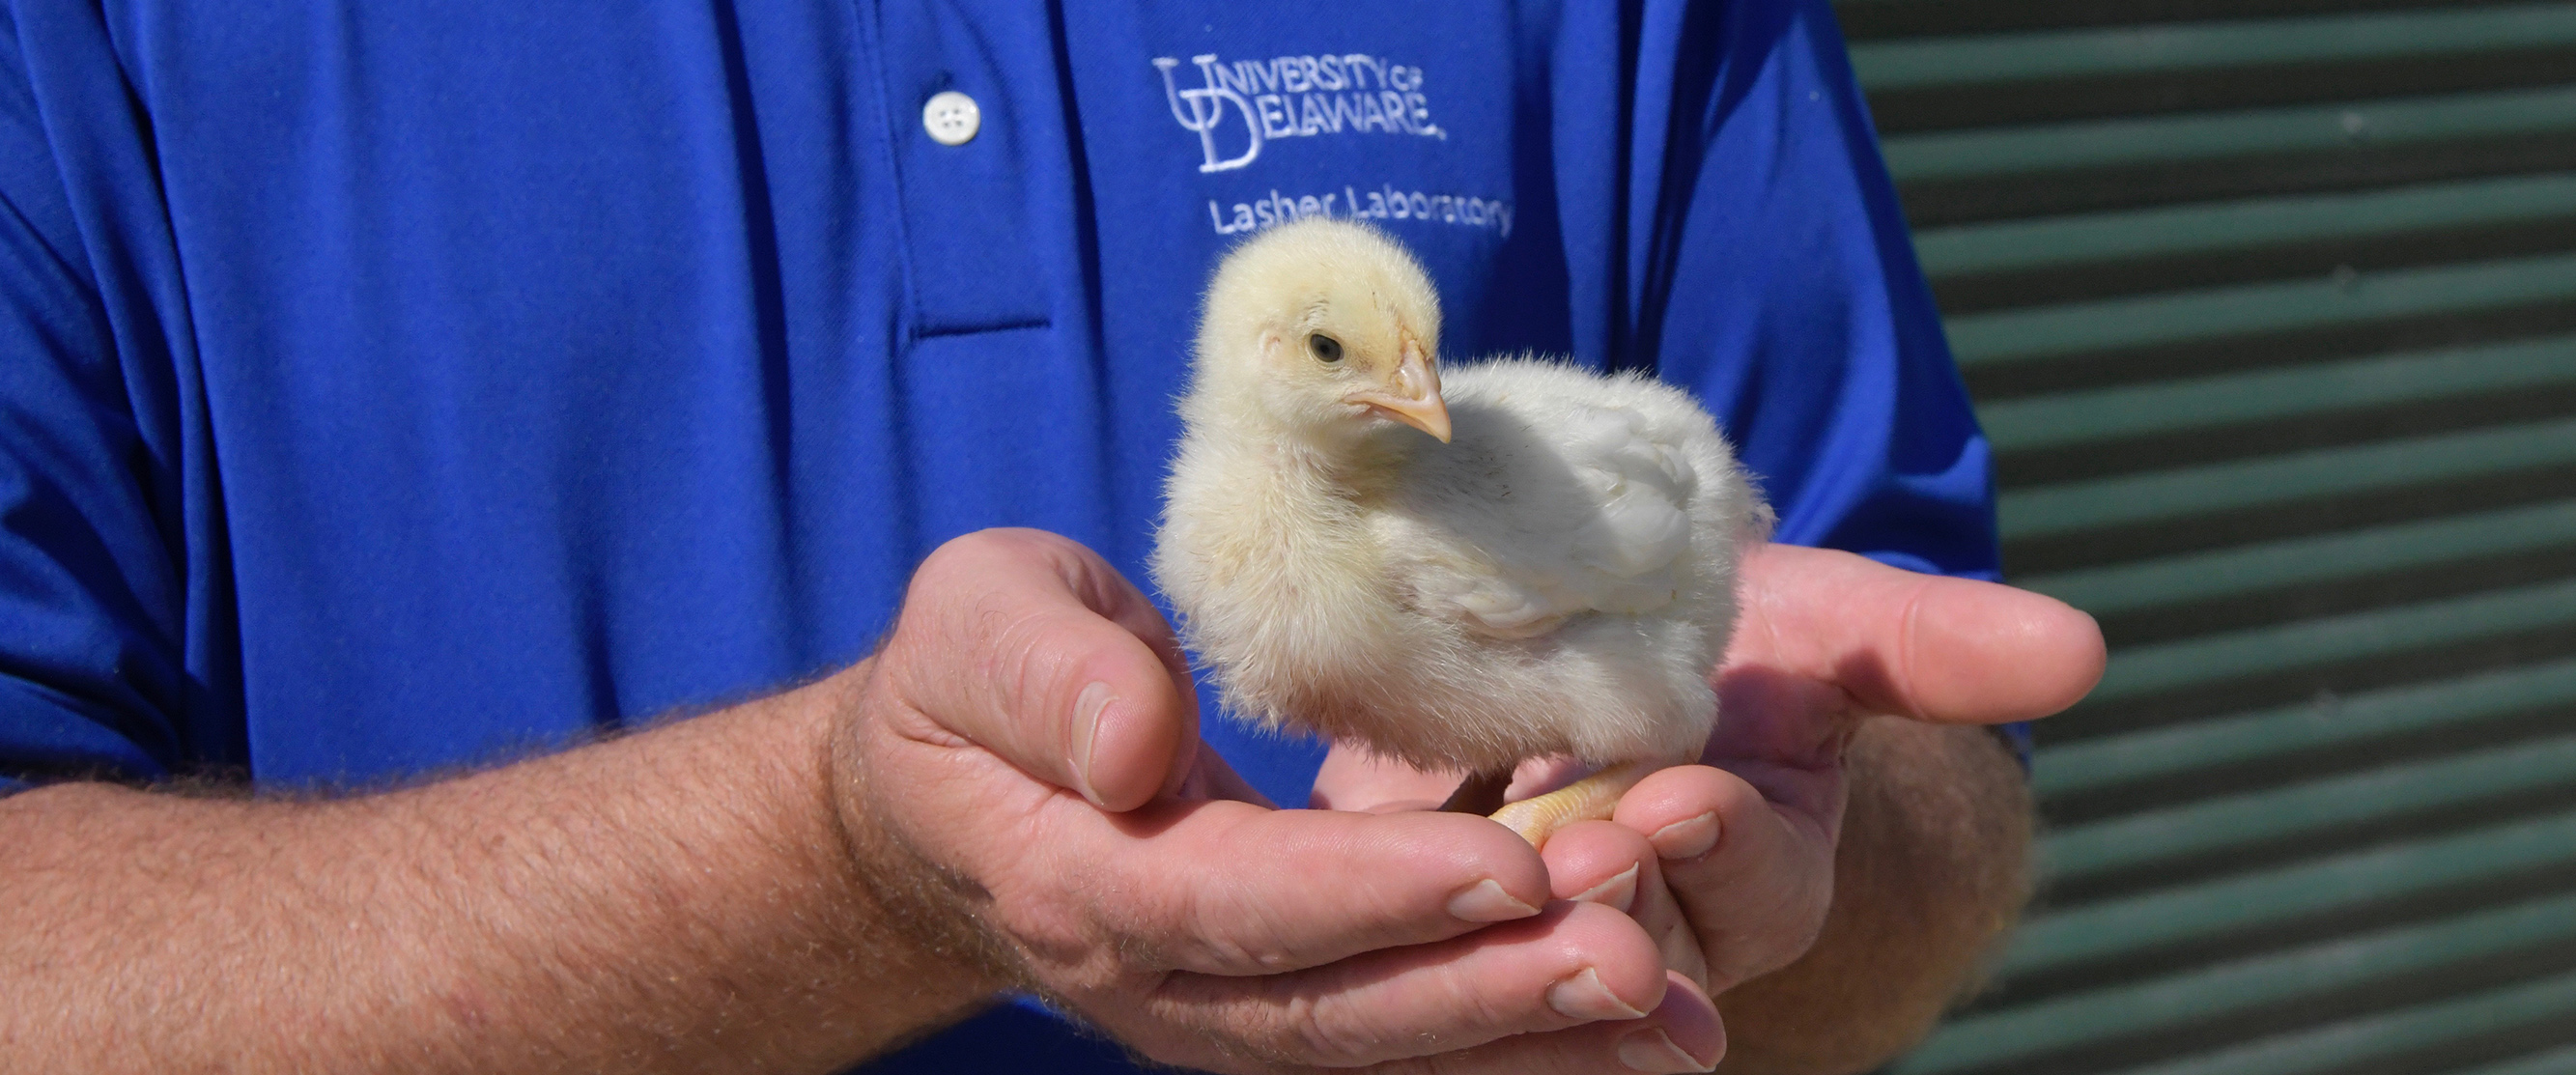 Researchers in Lasher Lab work on diagnostic services of the Poultry Health System